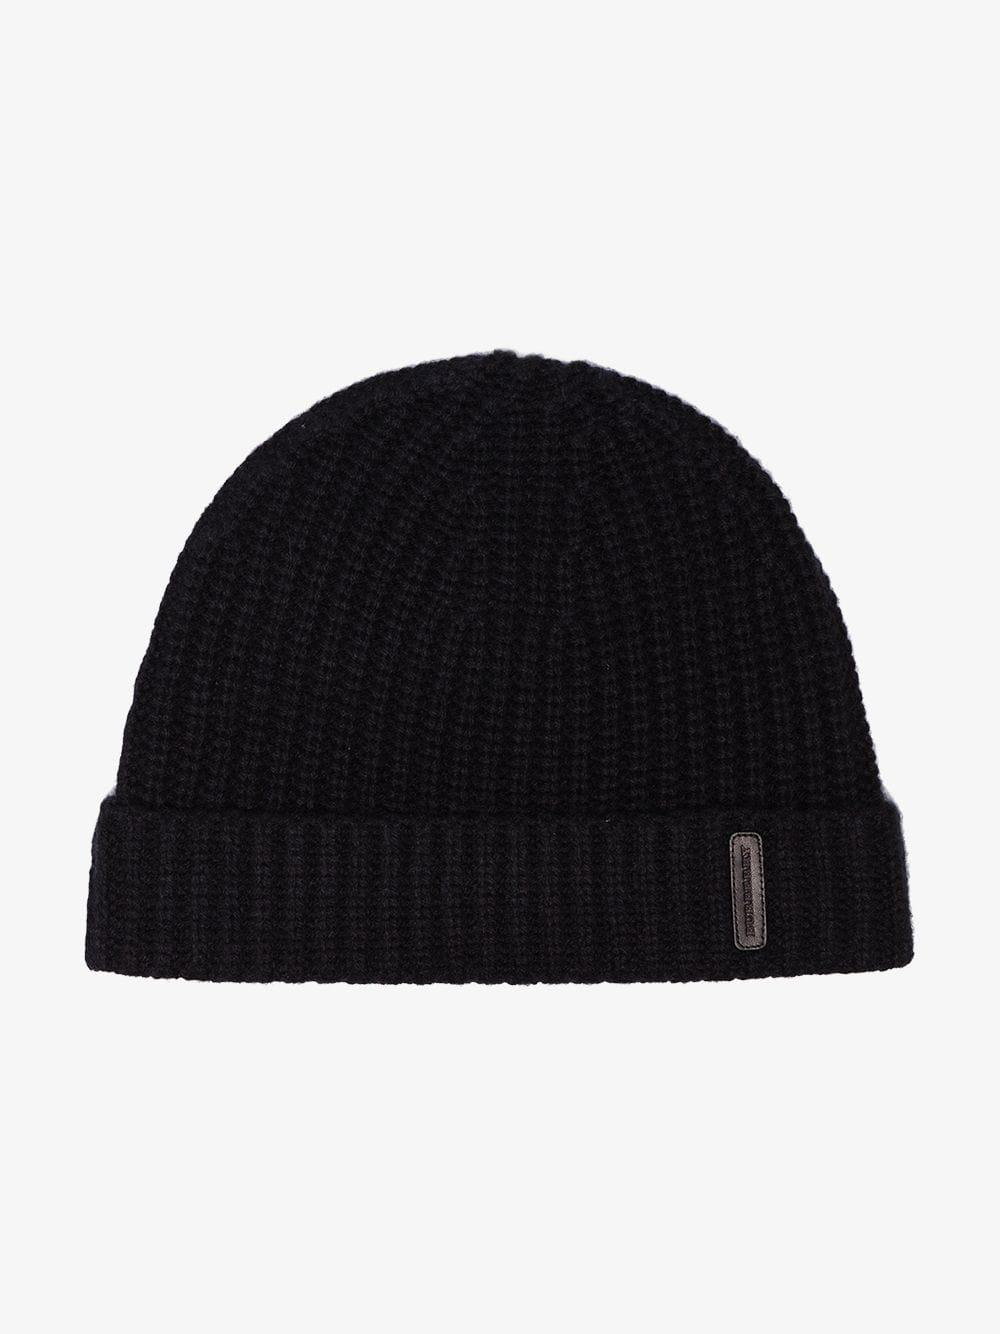 f19fee55ba0 Burberry Black Fisherman Knitted Cashmere Beanie Hat in Black for Men - Lyst